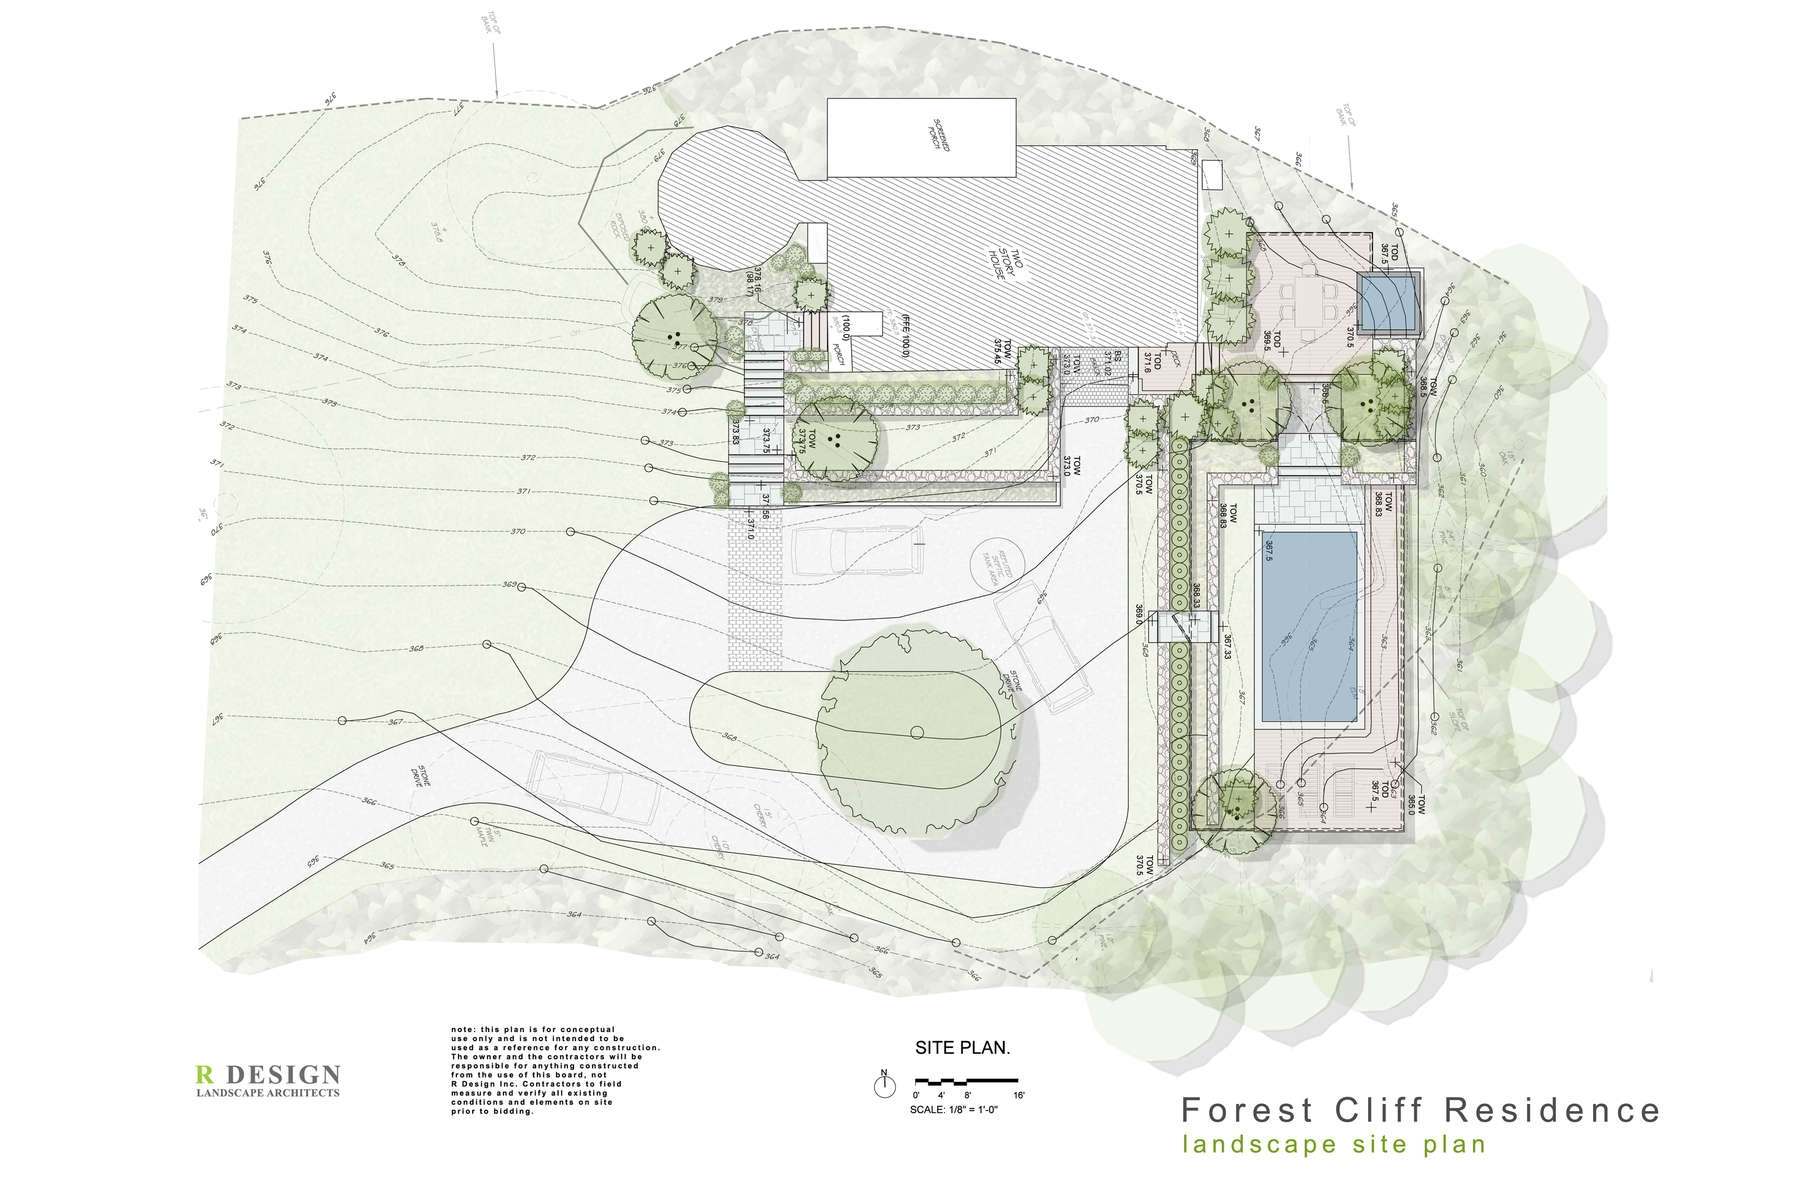 The site plan showing the pool area, upper dinning area, spa, new motor court, entry staircase and terraced walls to ground the house to the site.